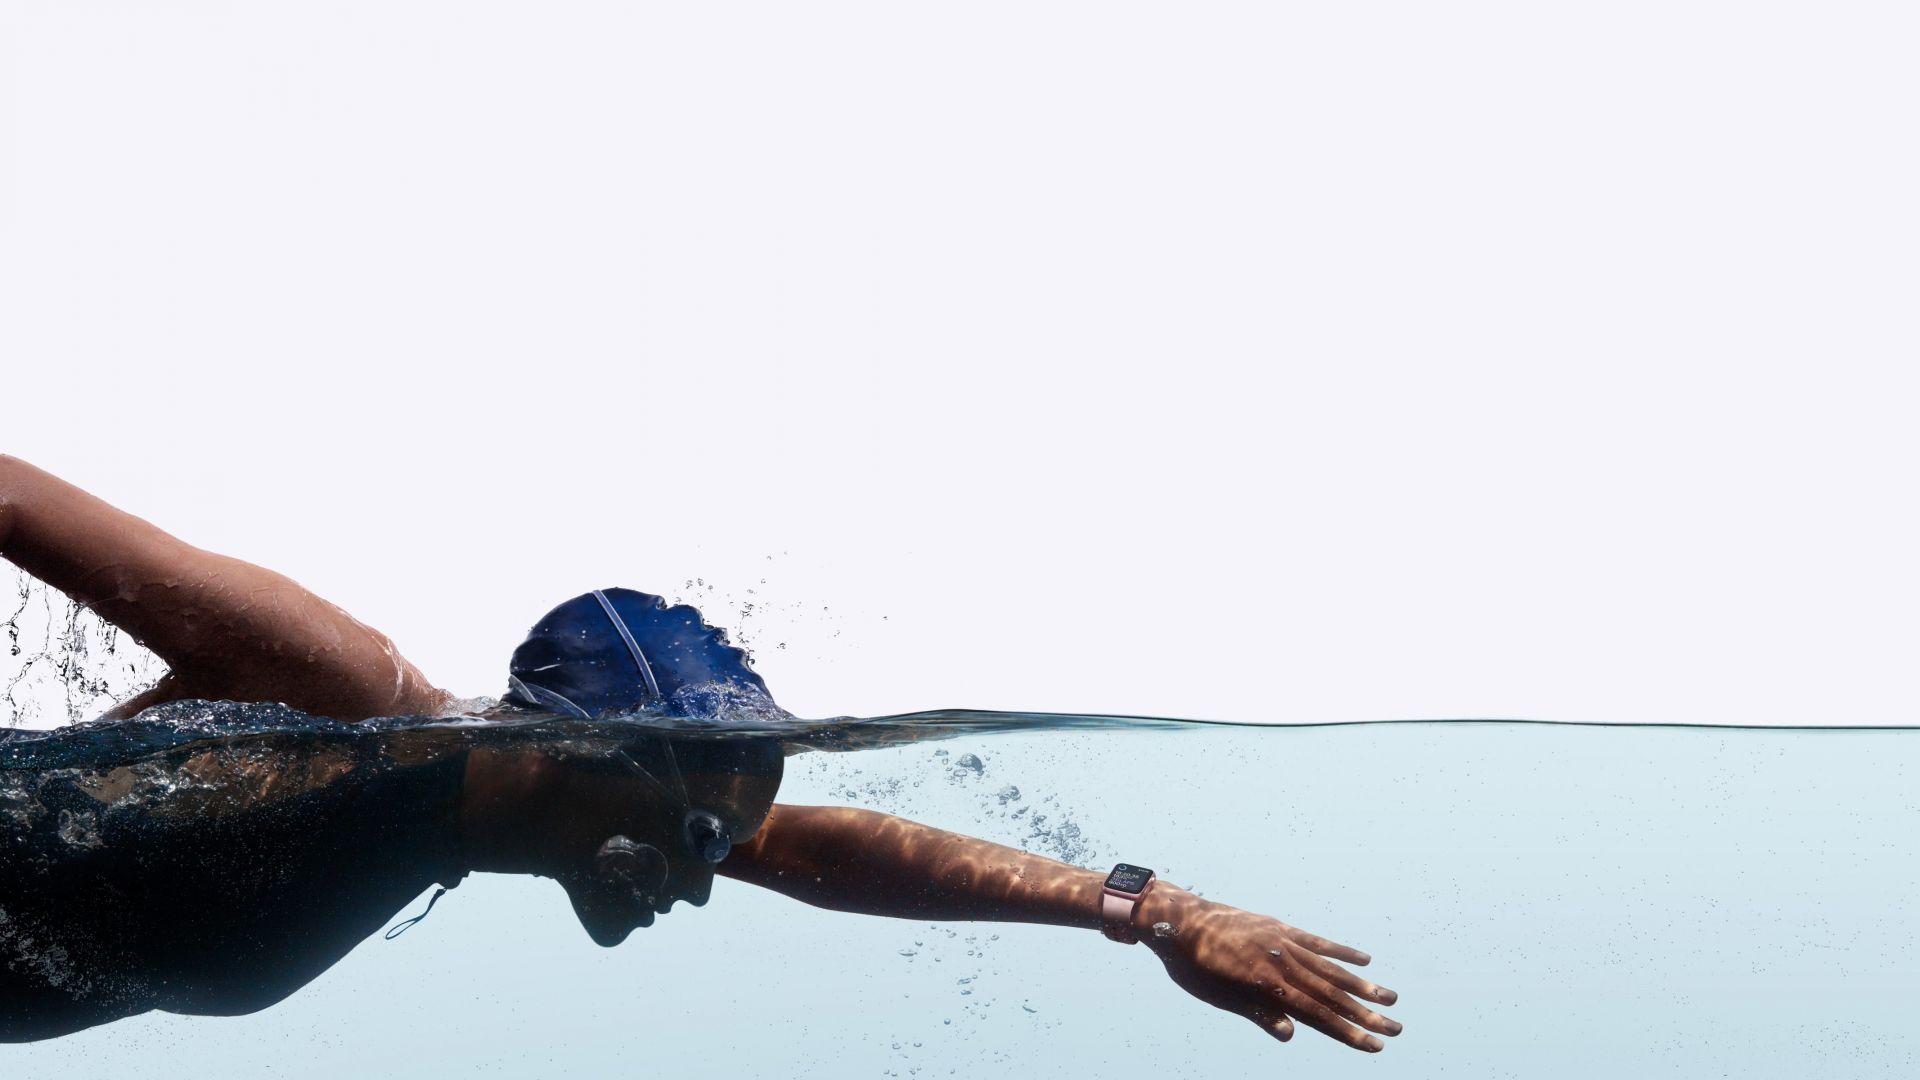 Apple Watch Series 2, smart watch, swimmer, iWatch, wallpaper, Apple, display, silver, Real Futuristic Gadgets